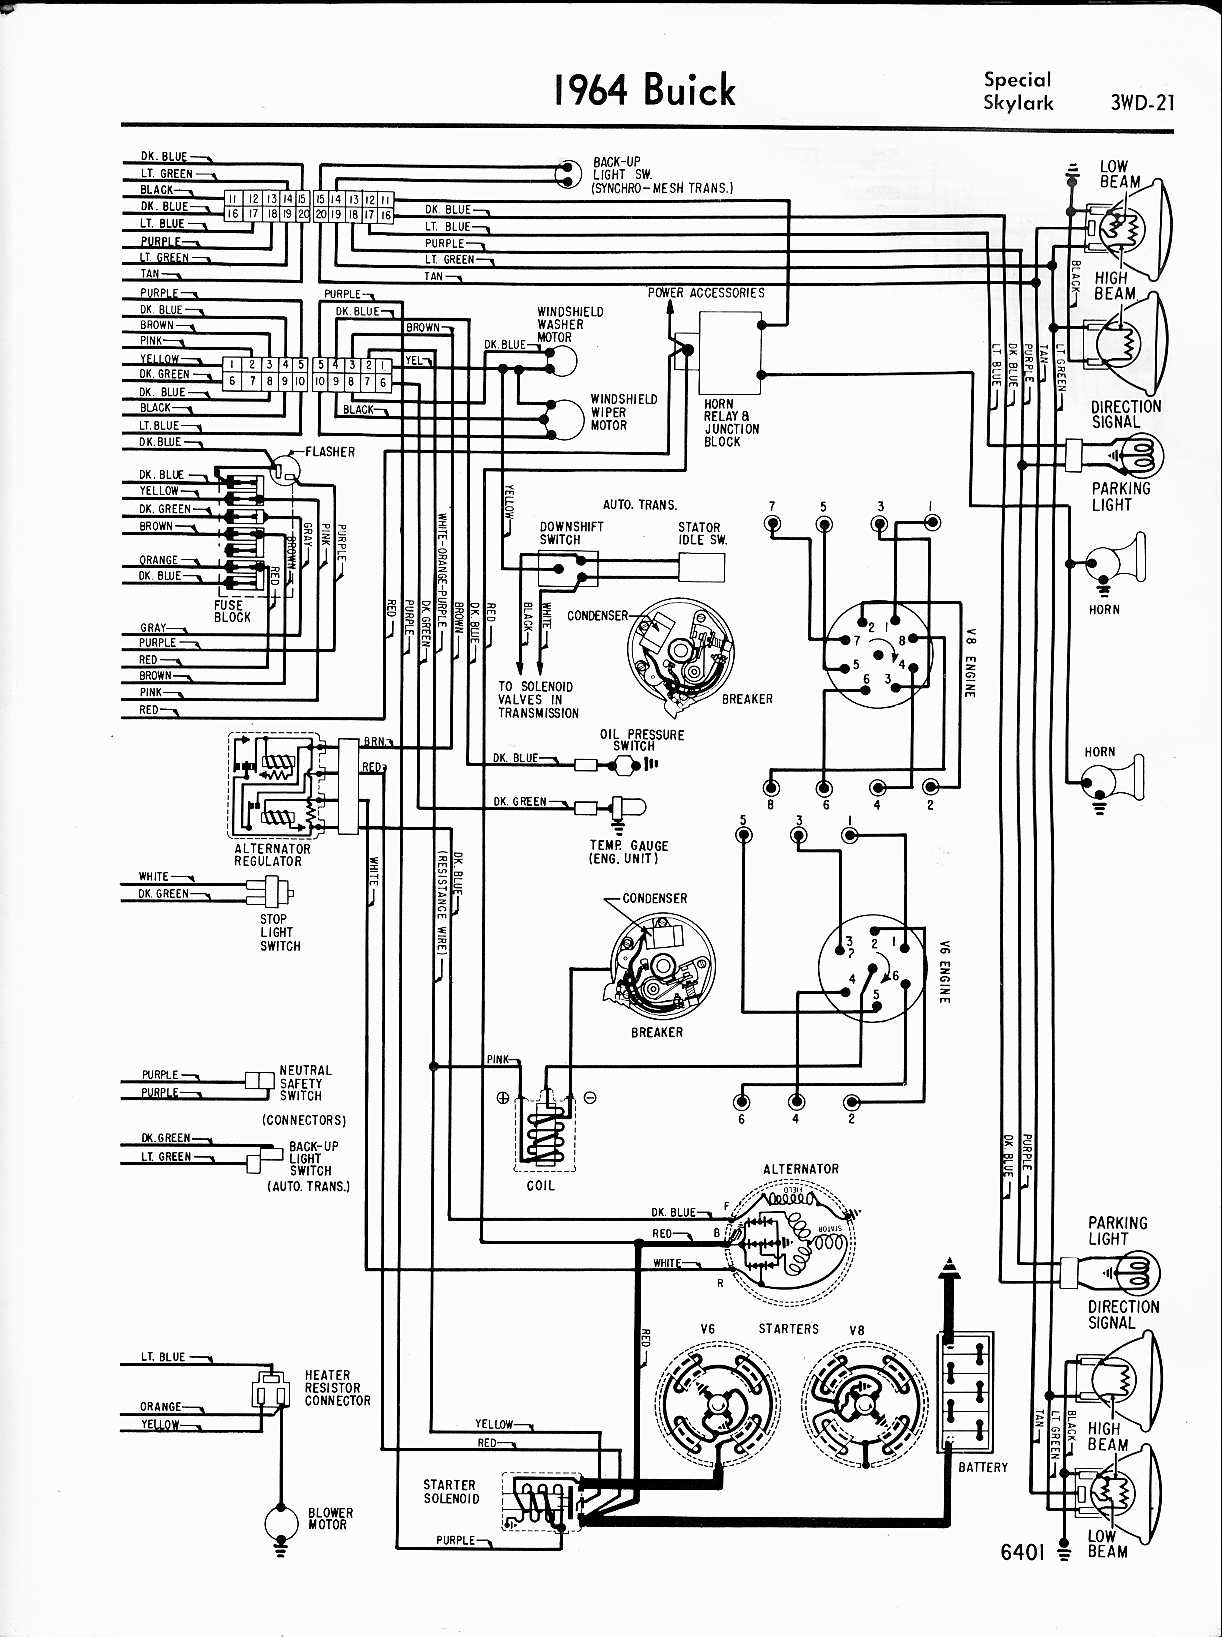 92 Buick V6 Firing Order Diagram Free Image About